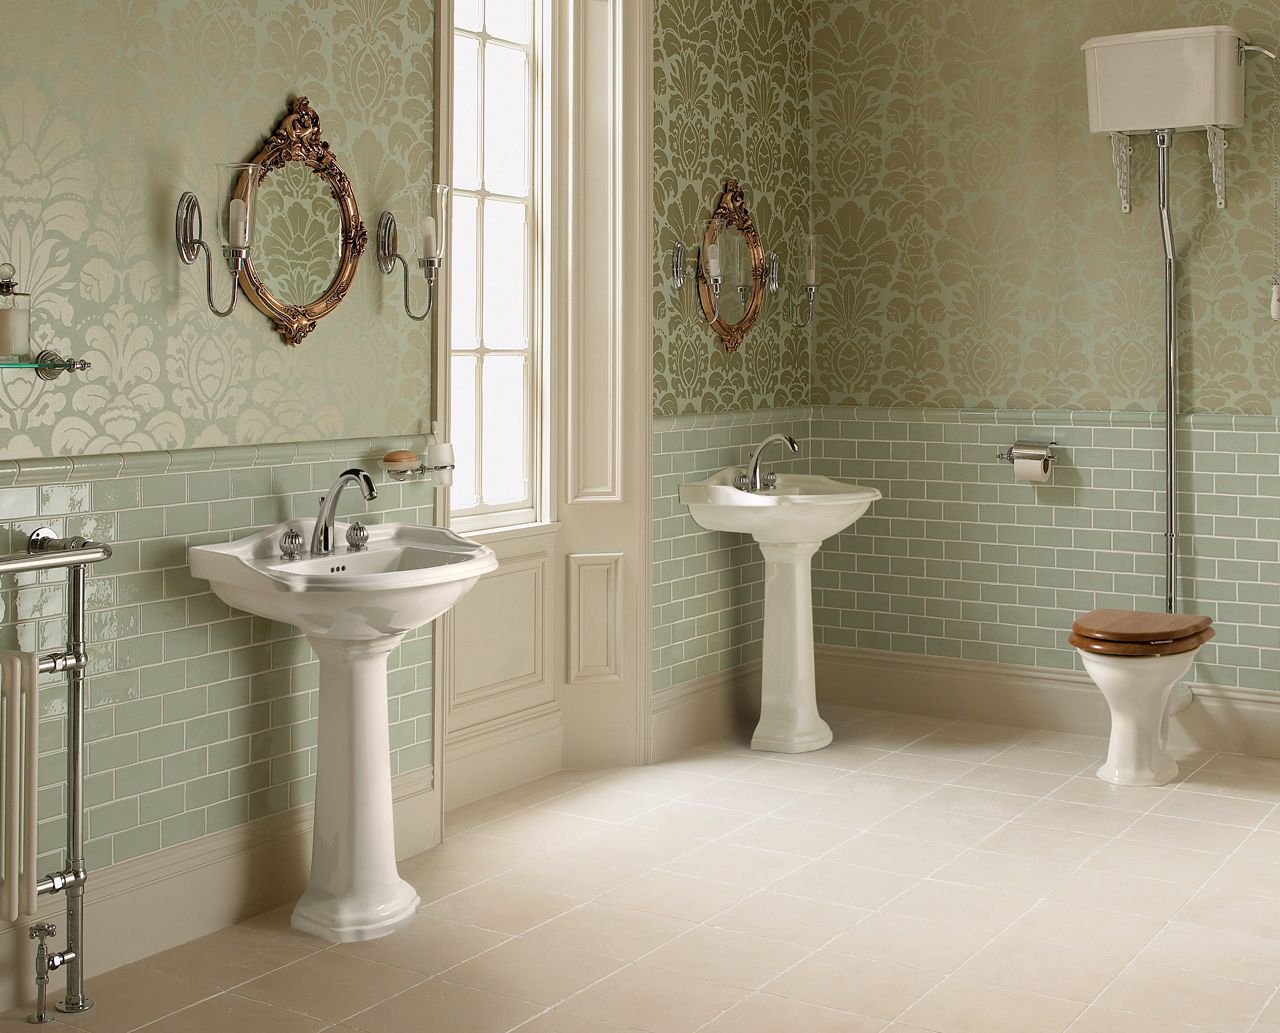 Classic Bathrooms: Imperial Bathrooms - Oxford_main